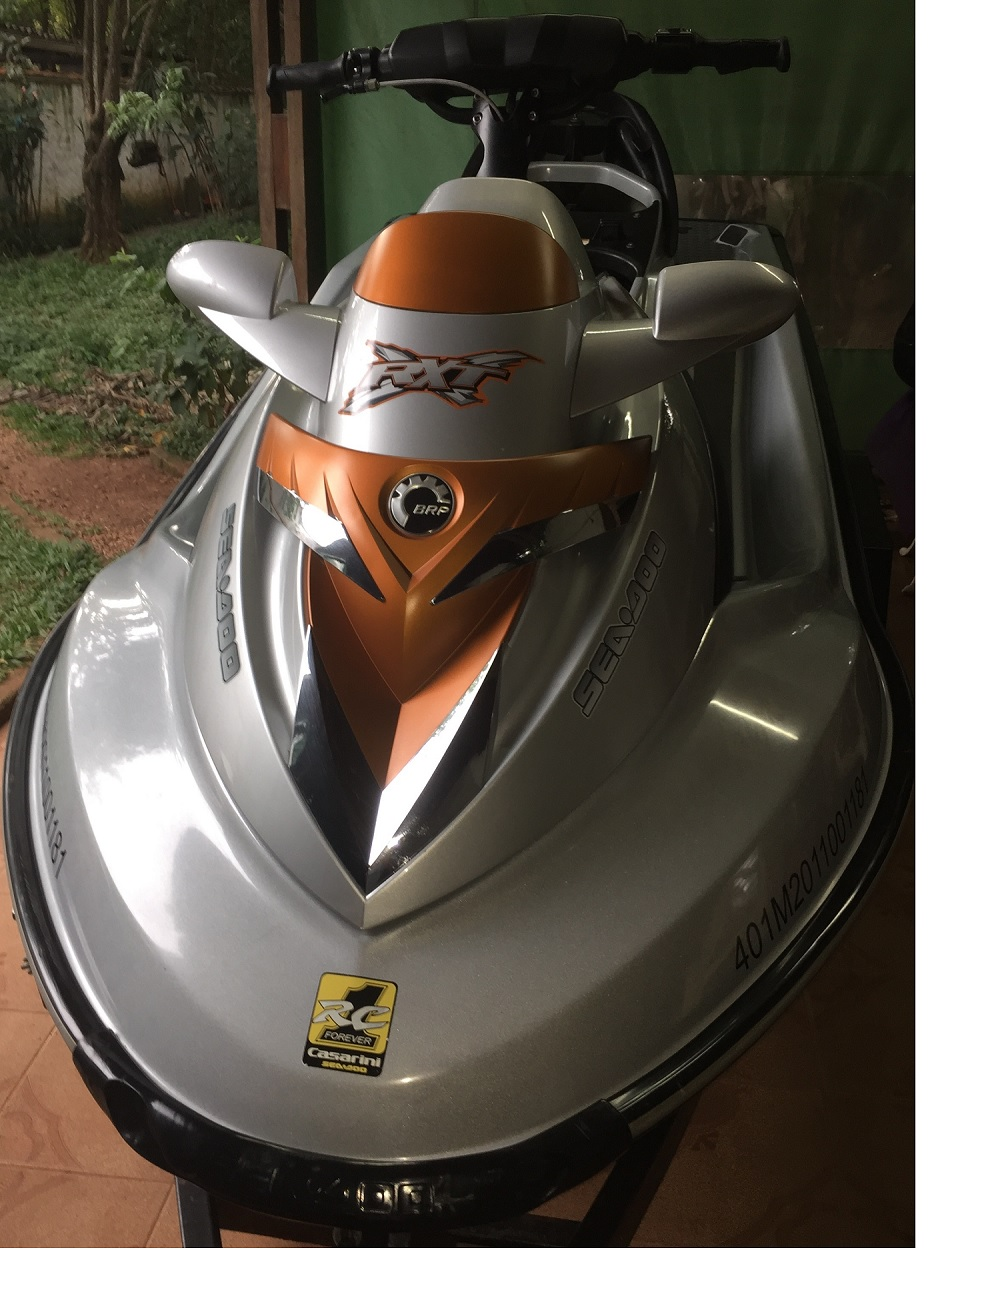 Sea Doo RXT-255